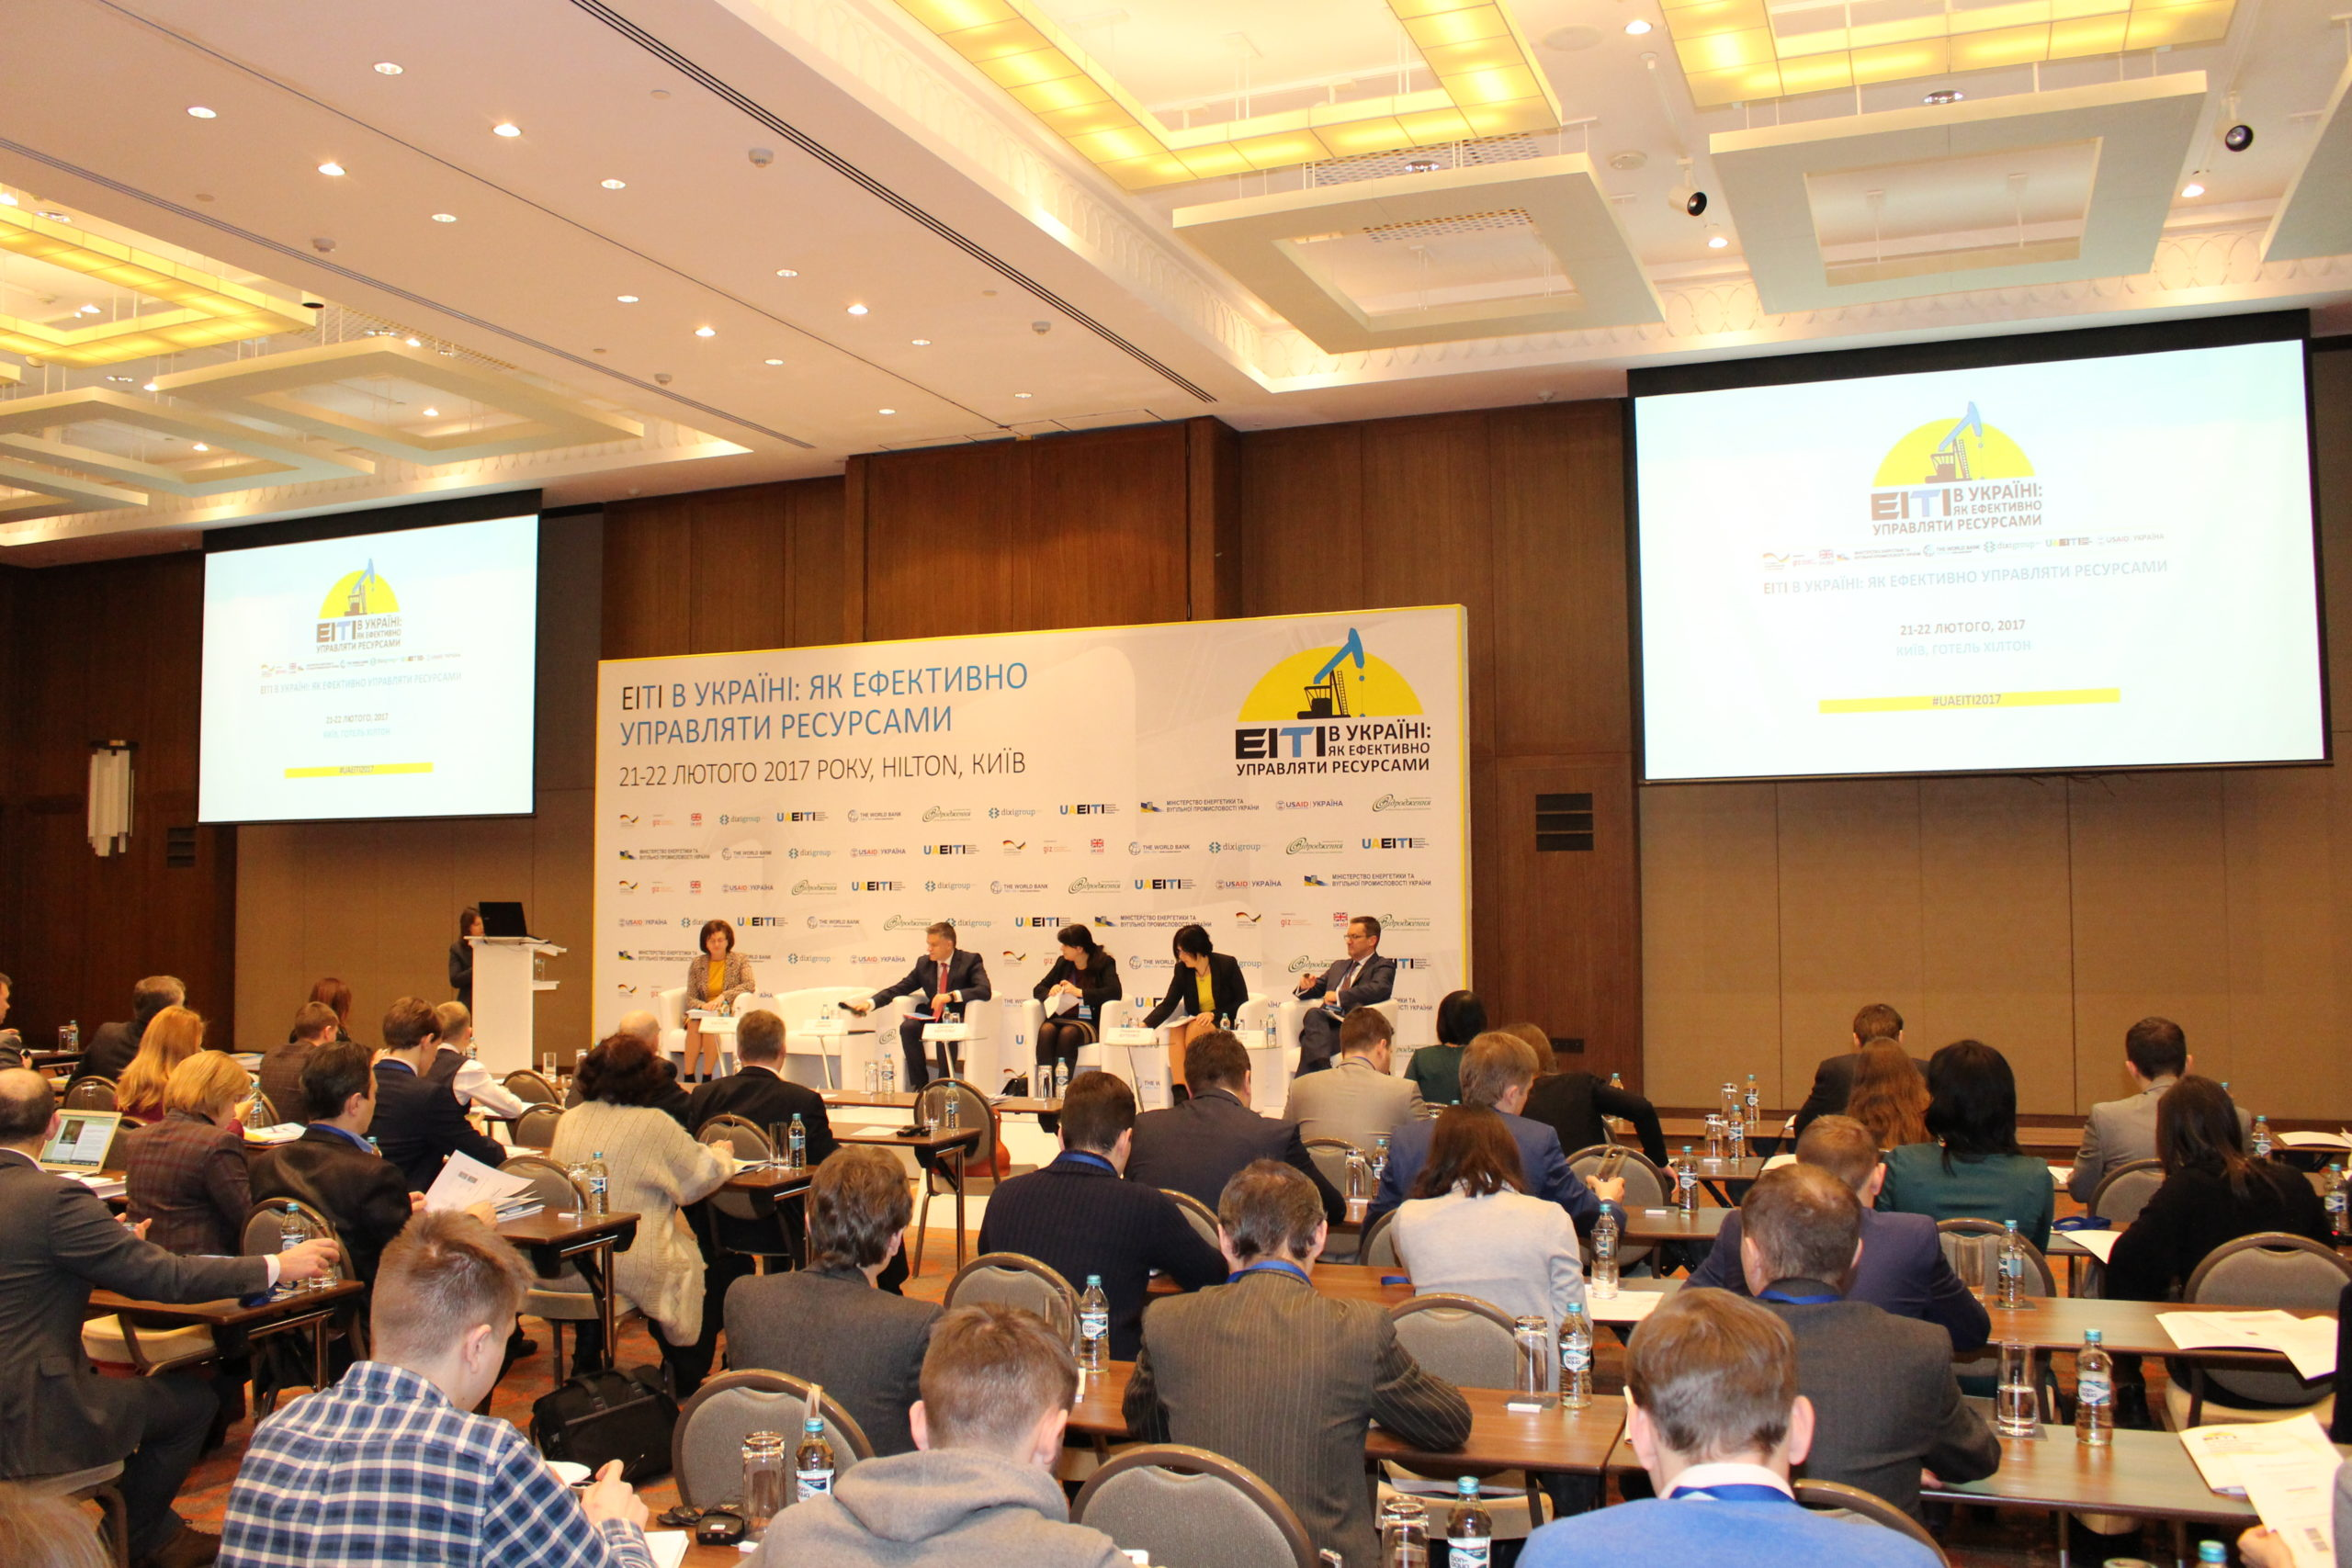 EITI in Ukraine: How to Manage Resources Efficiently. Day 1